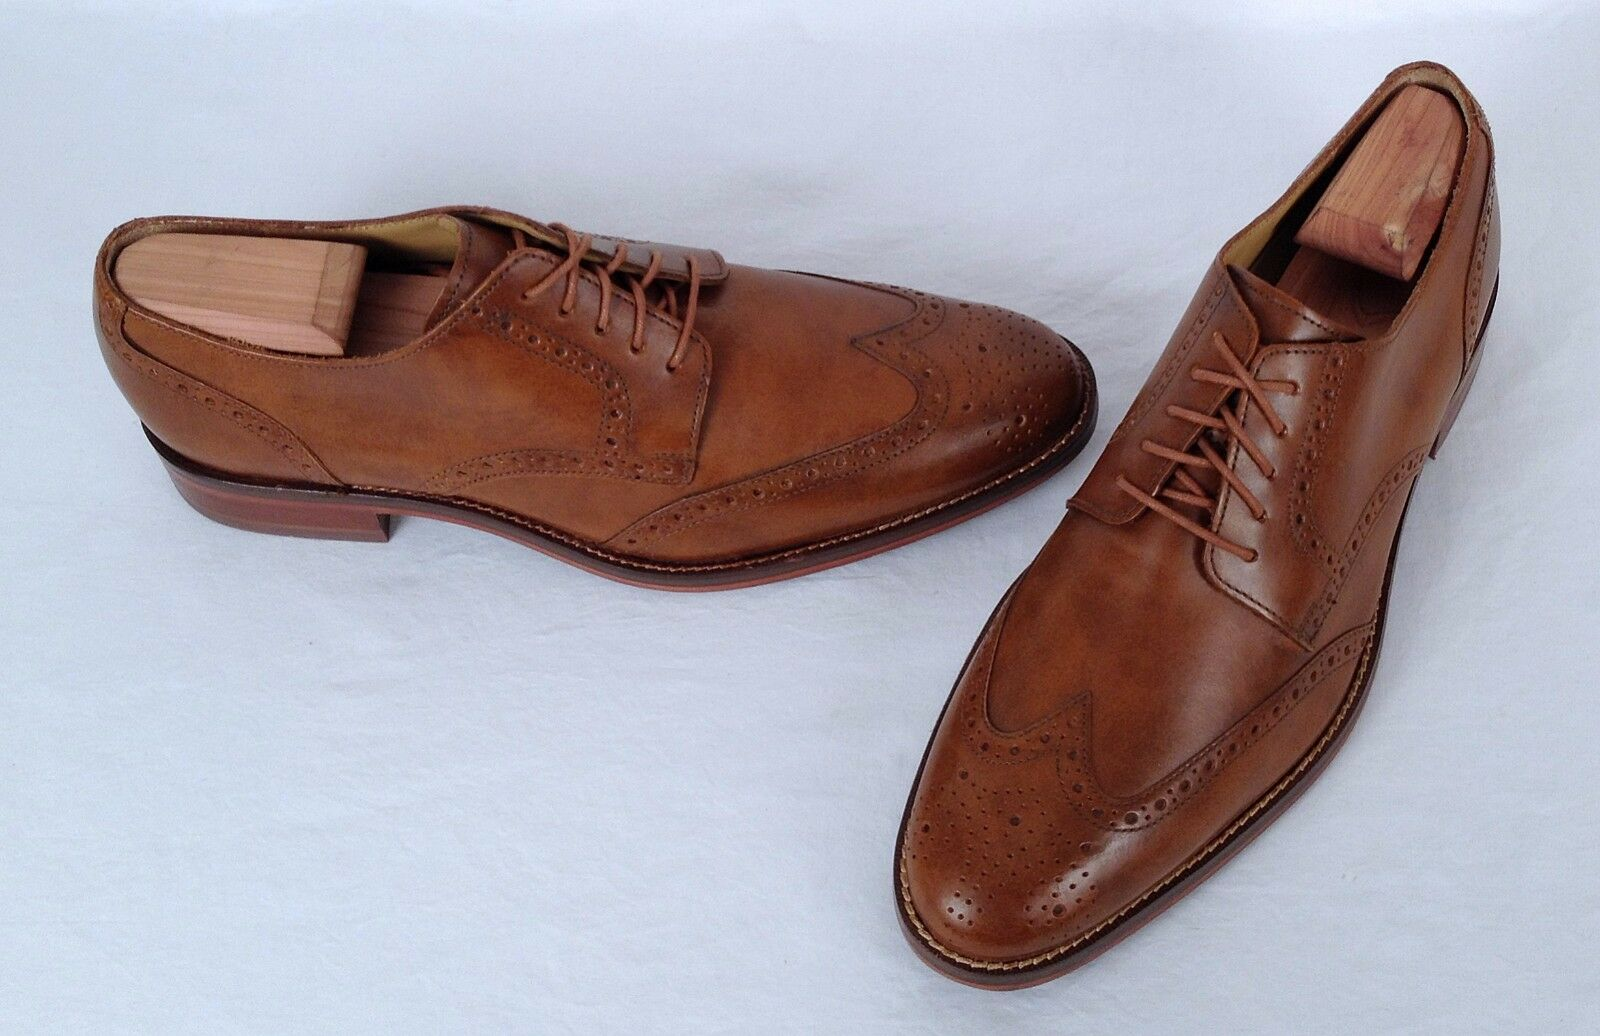 NEW!! Cole Haan Wingtip Oxford British Tan Size 8 M   (Z1) Scarpe classiche da uomo